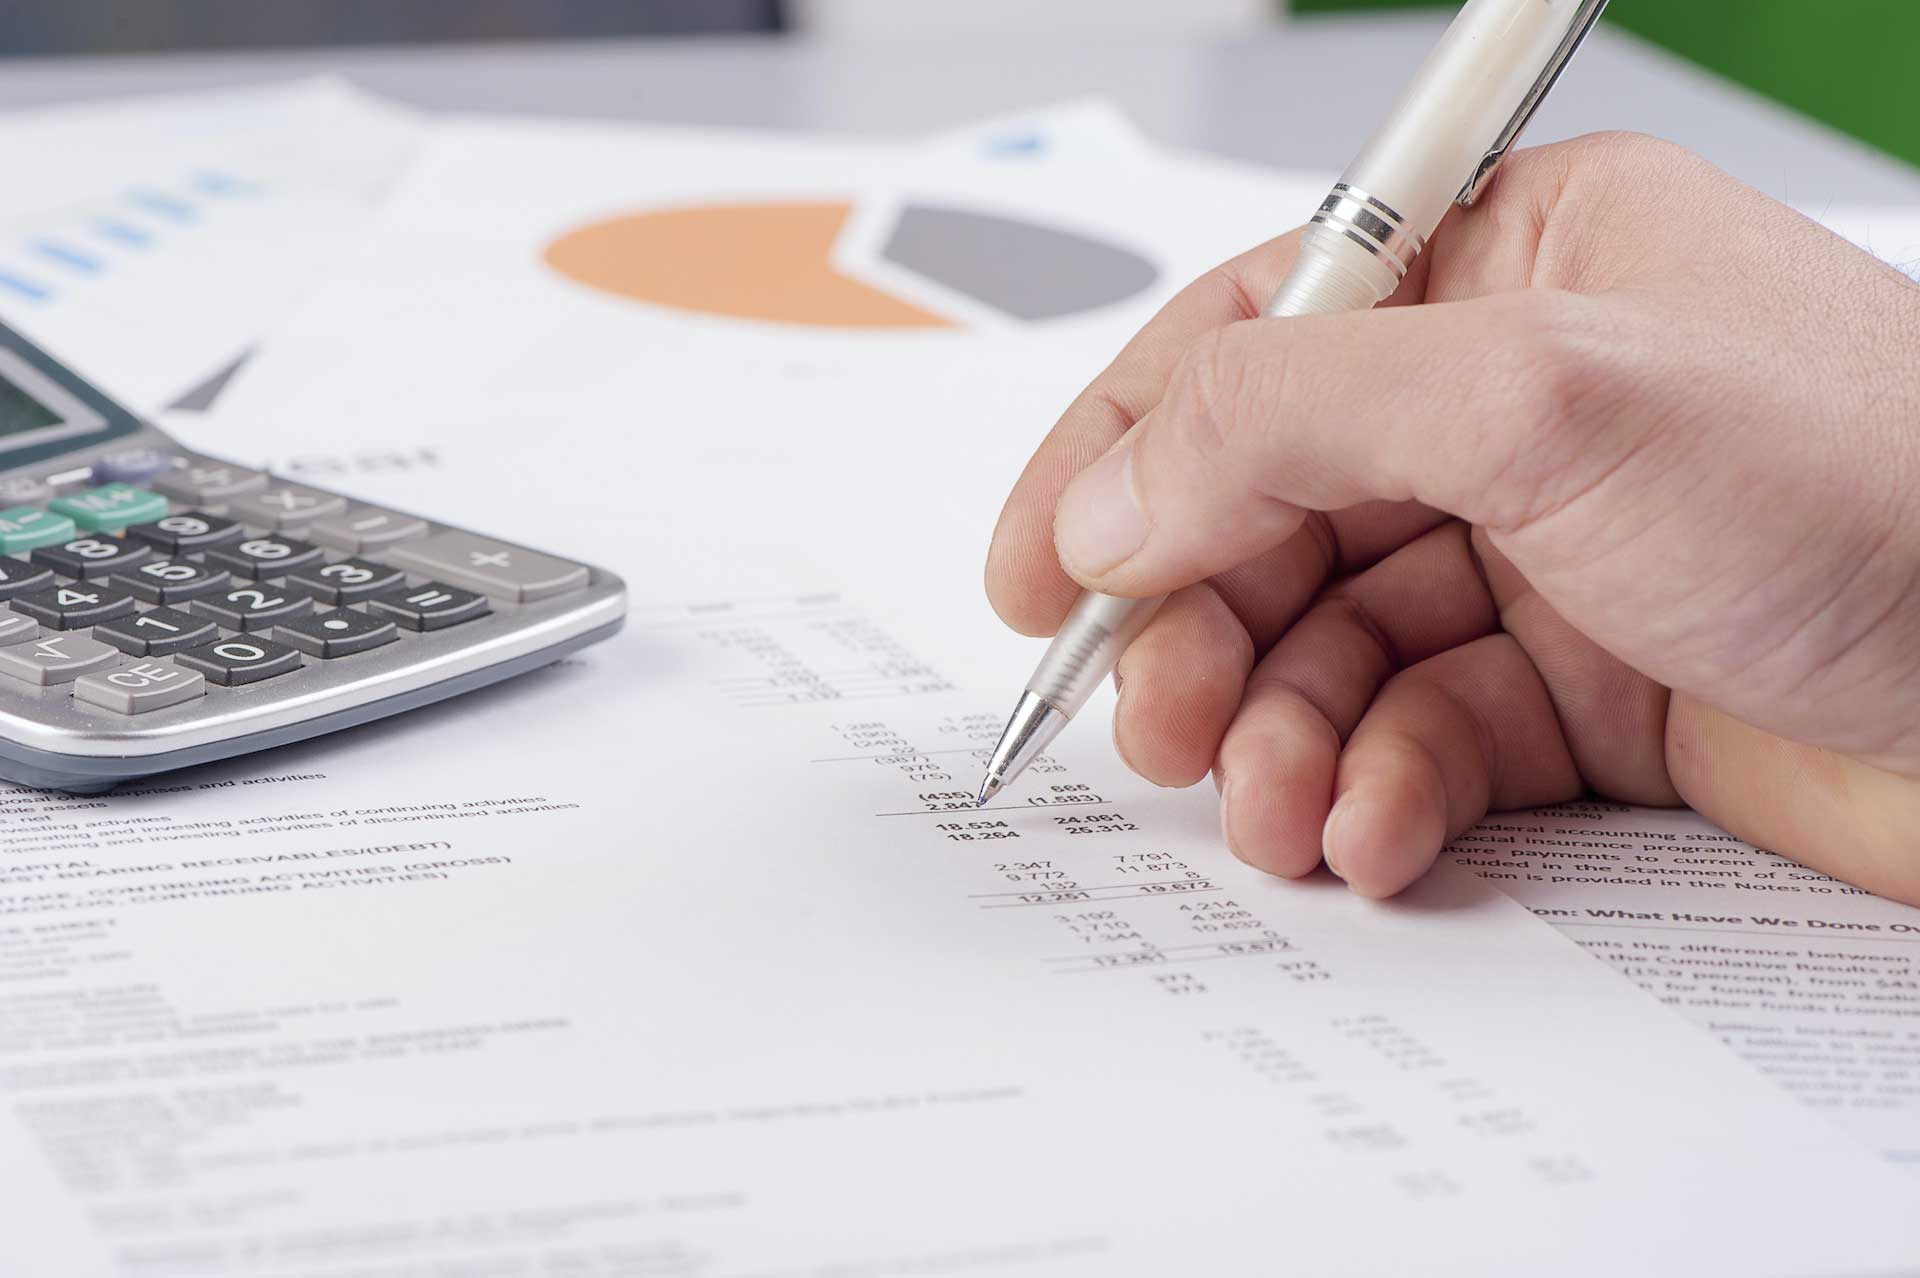 accounting and finance professional working